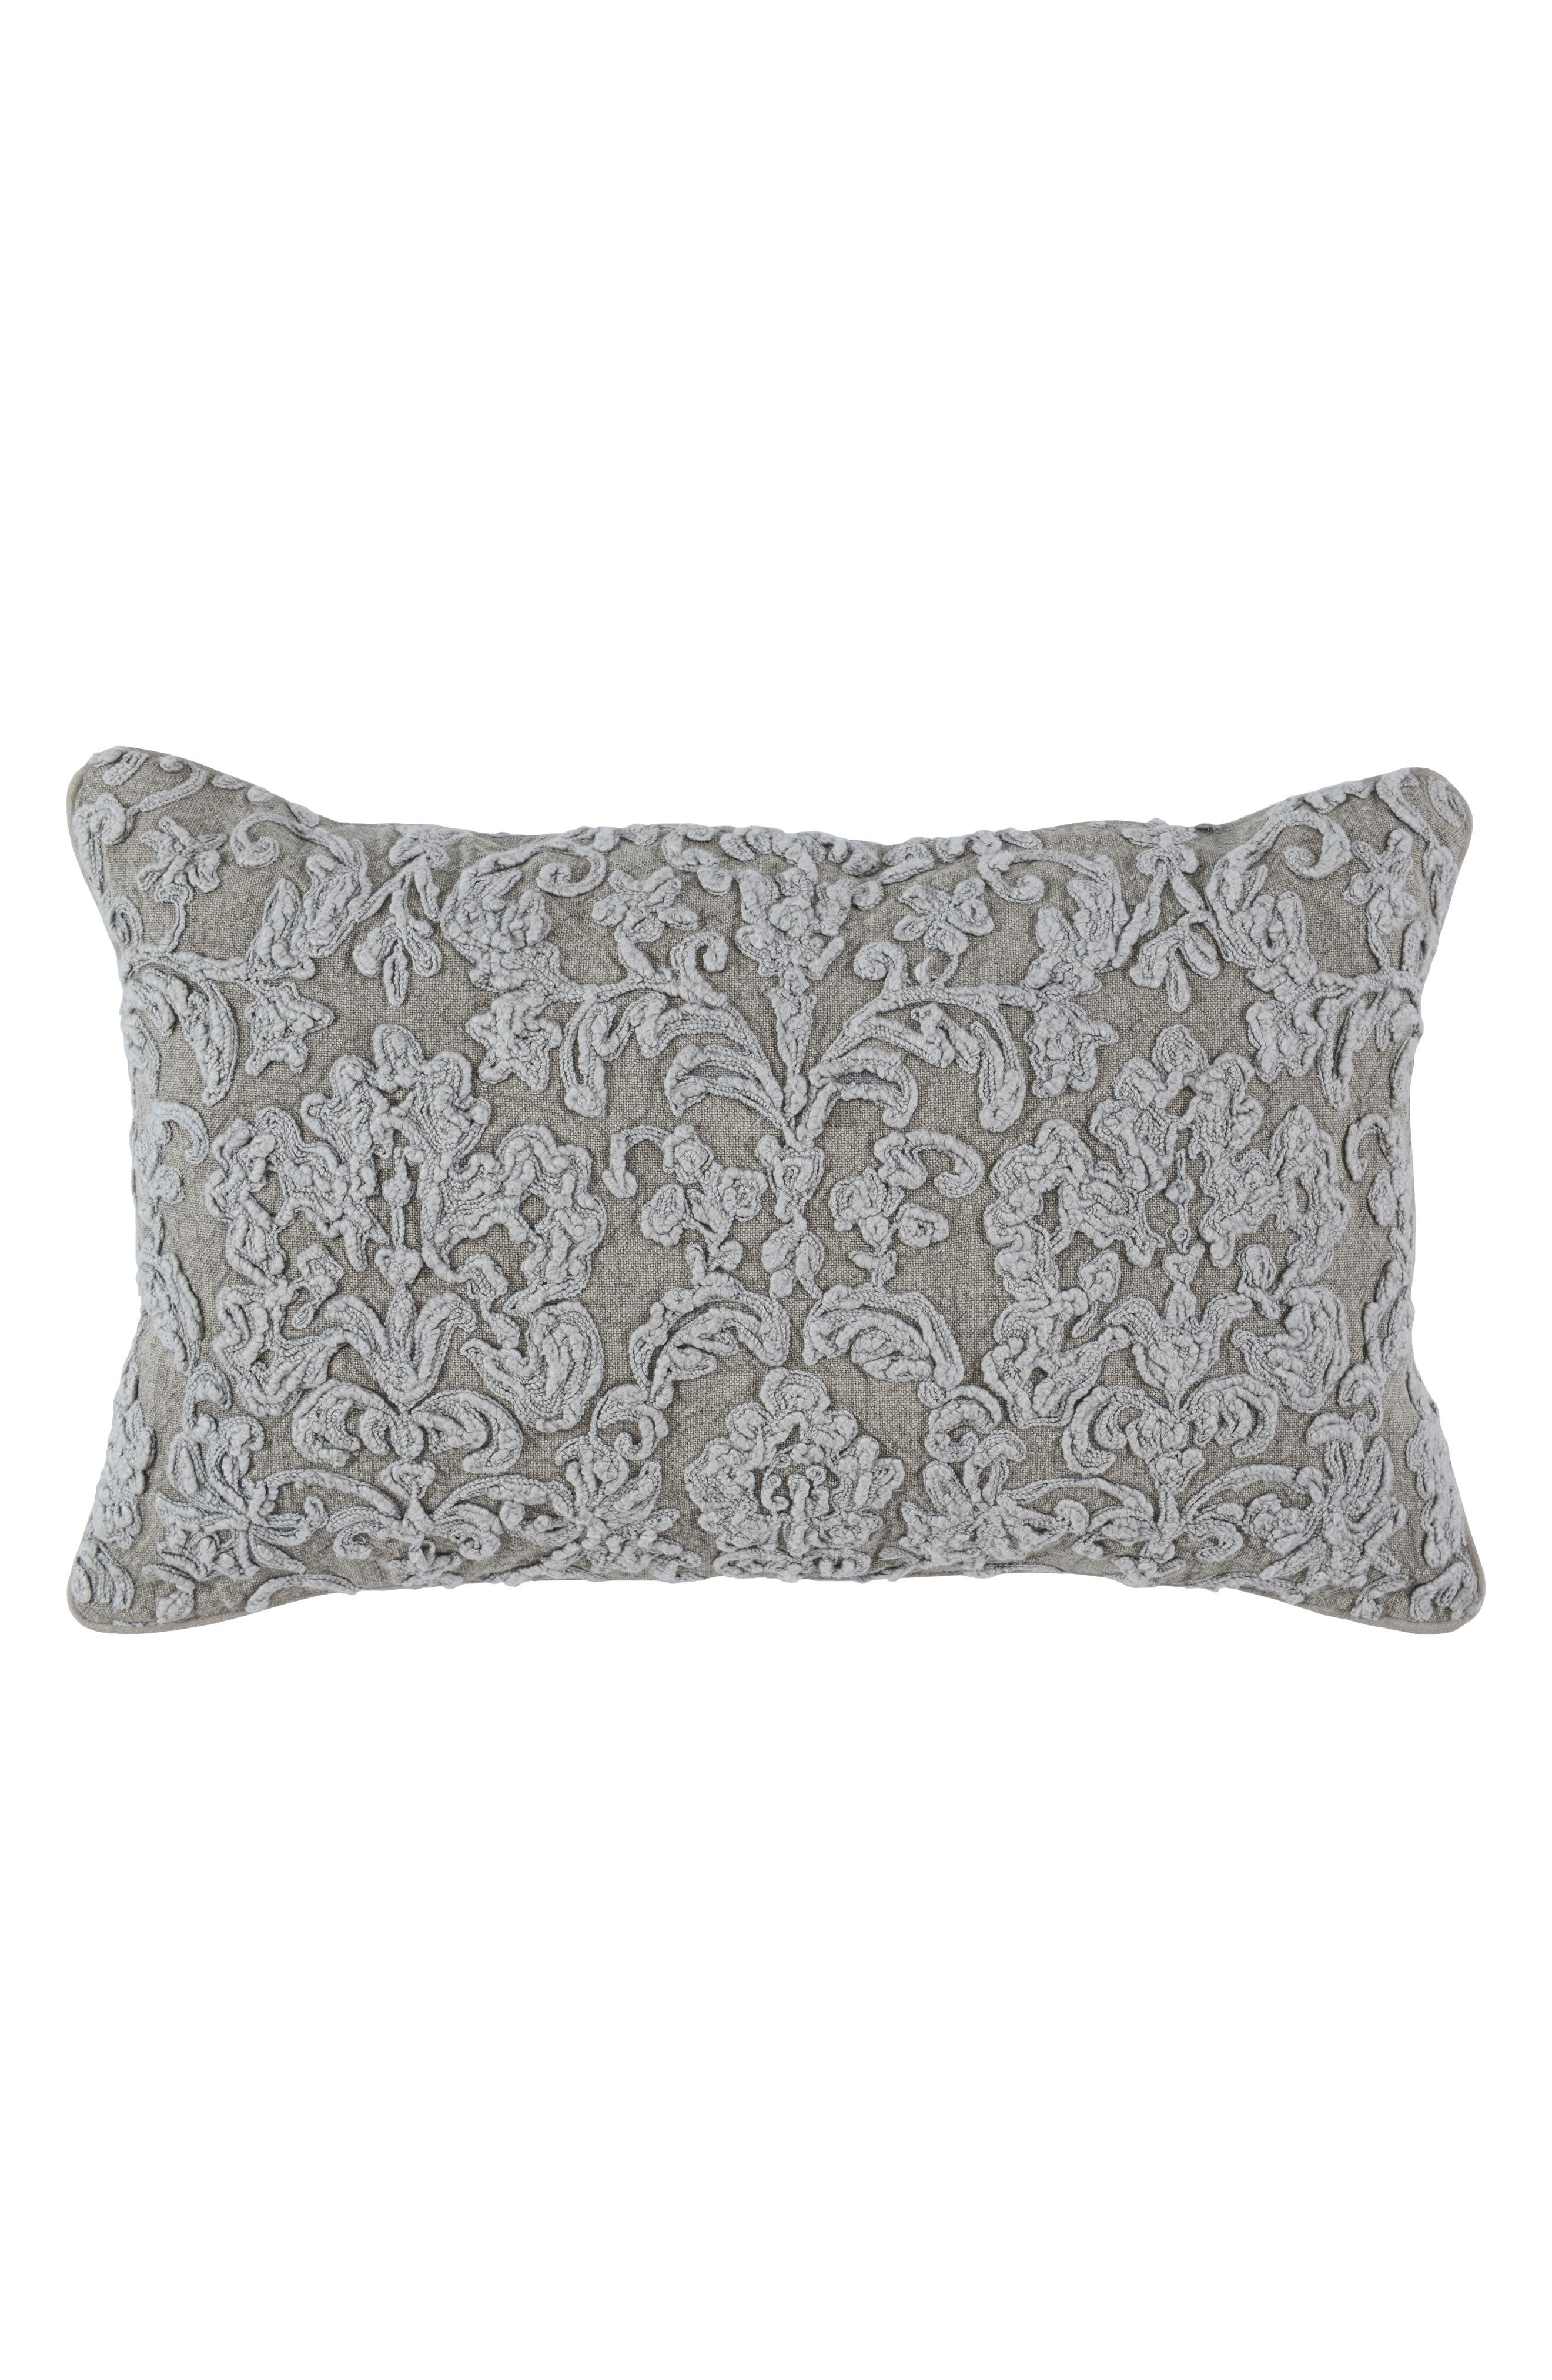 Giselle Accent Pillow,                         Main,                         color, Natural